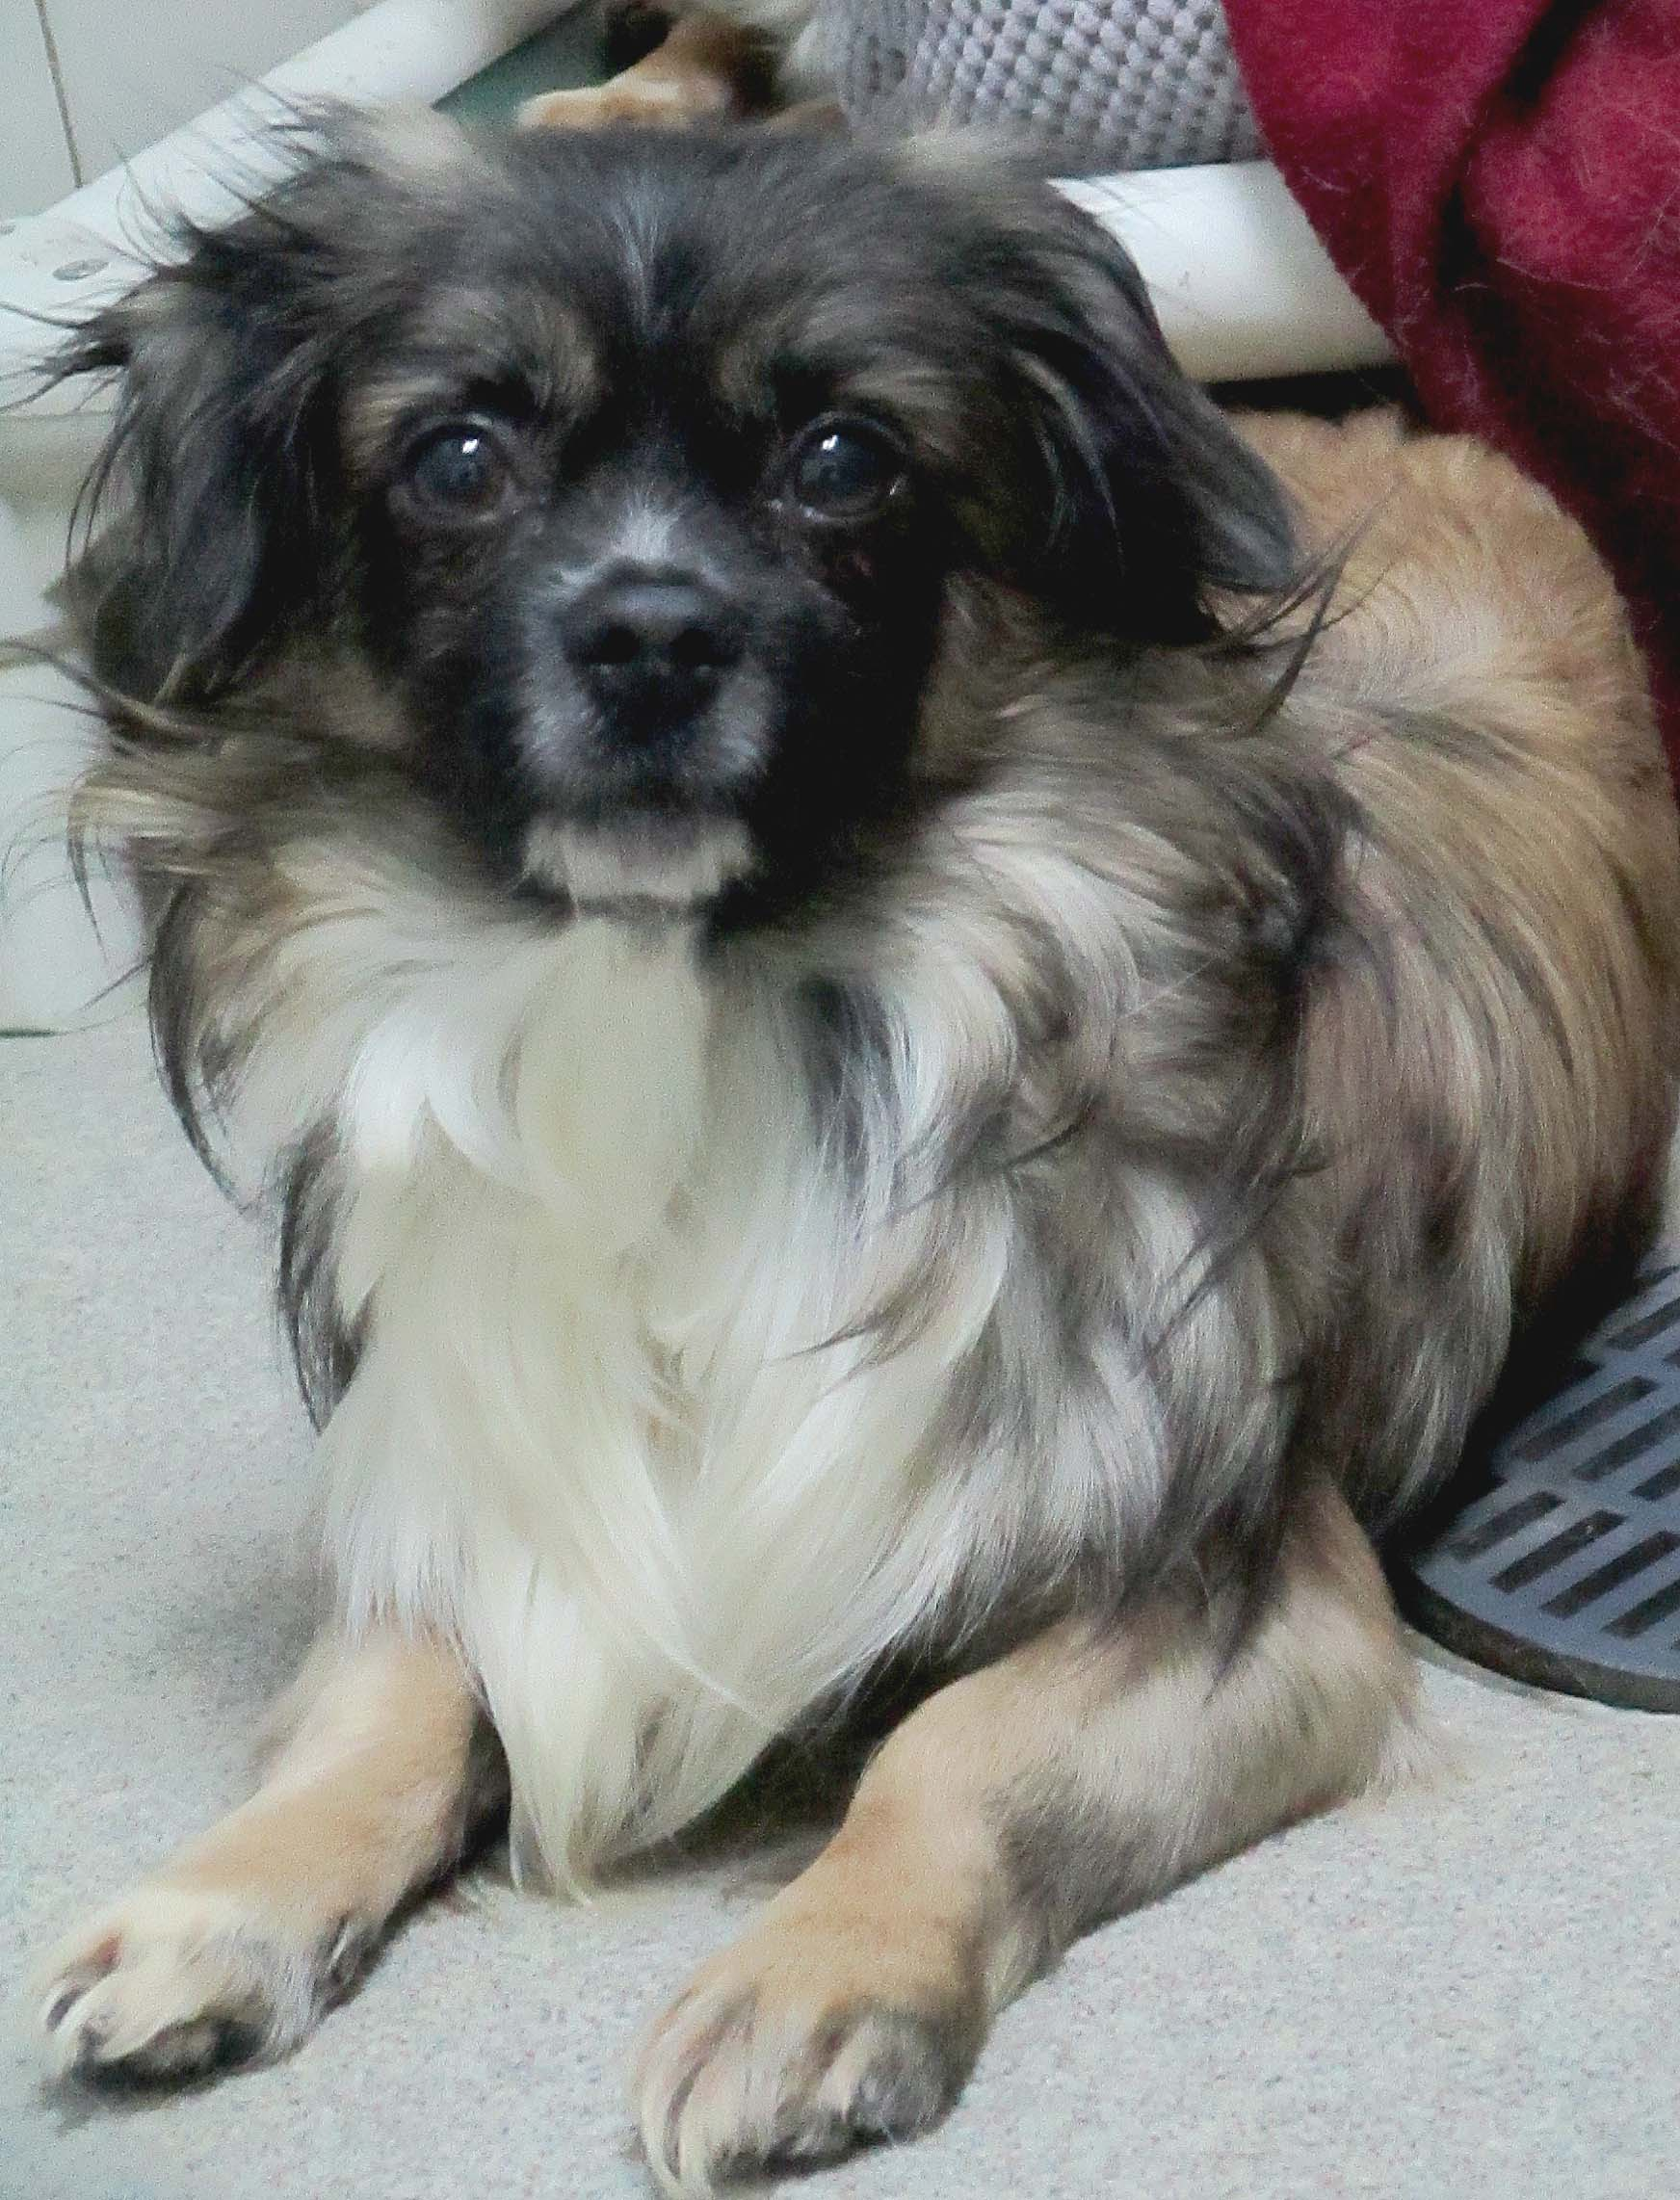 Frosty is a 5 year old Pekingese. He can be slow to warm up to new people and does need help with house training. He is a cuddler when he starts to trust new people.